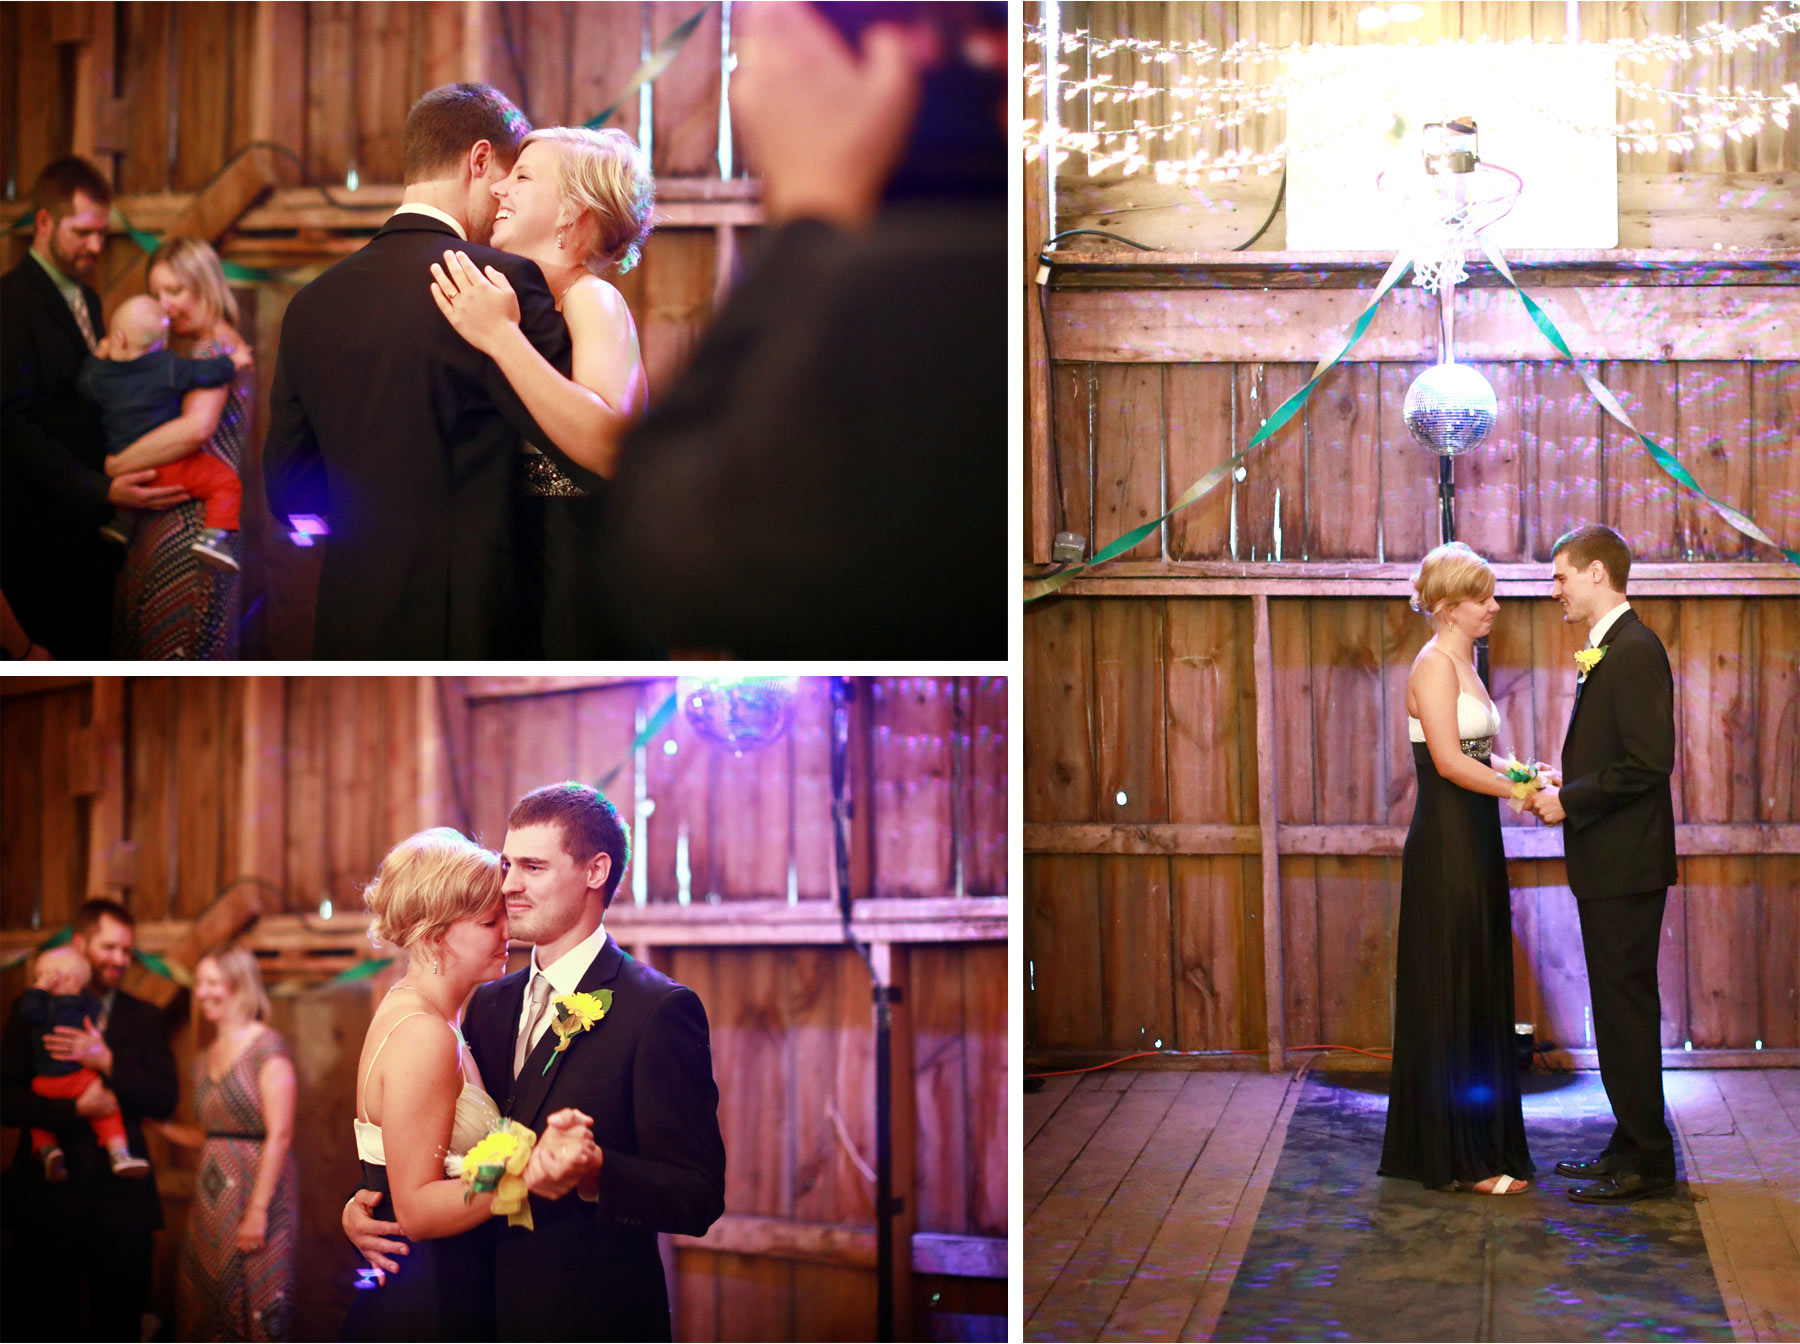 09-Vick-Photography-Proposal-Session-Engagement-Family-Farm-Prom-Dance-Barn-Kasie-and-Josh.jpg